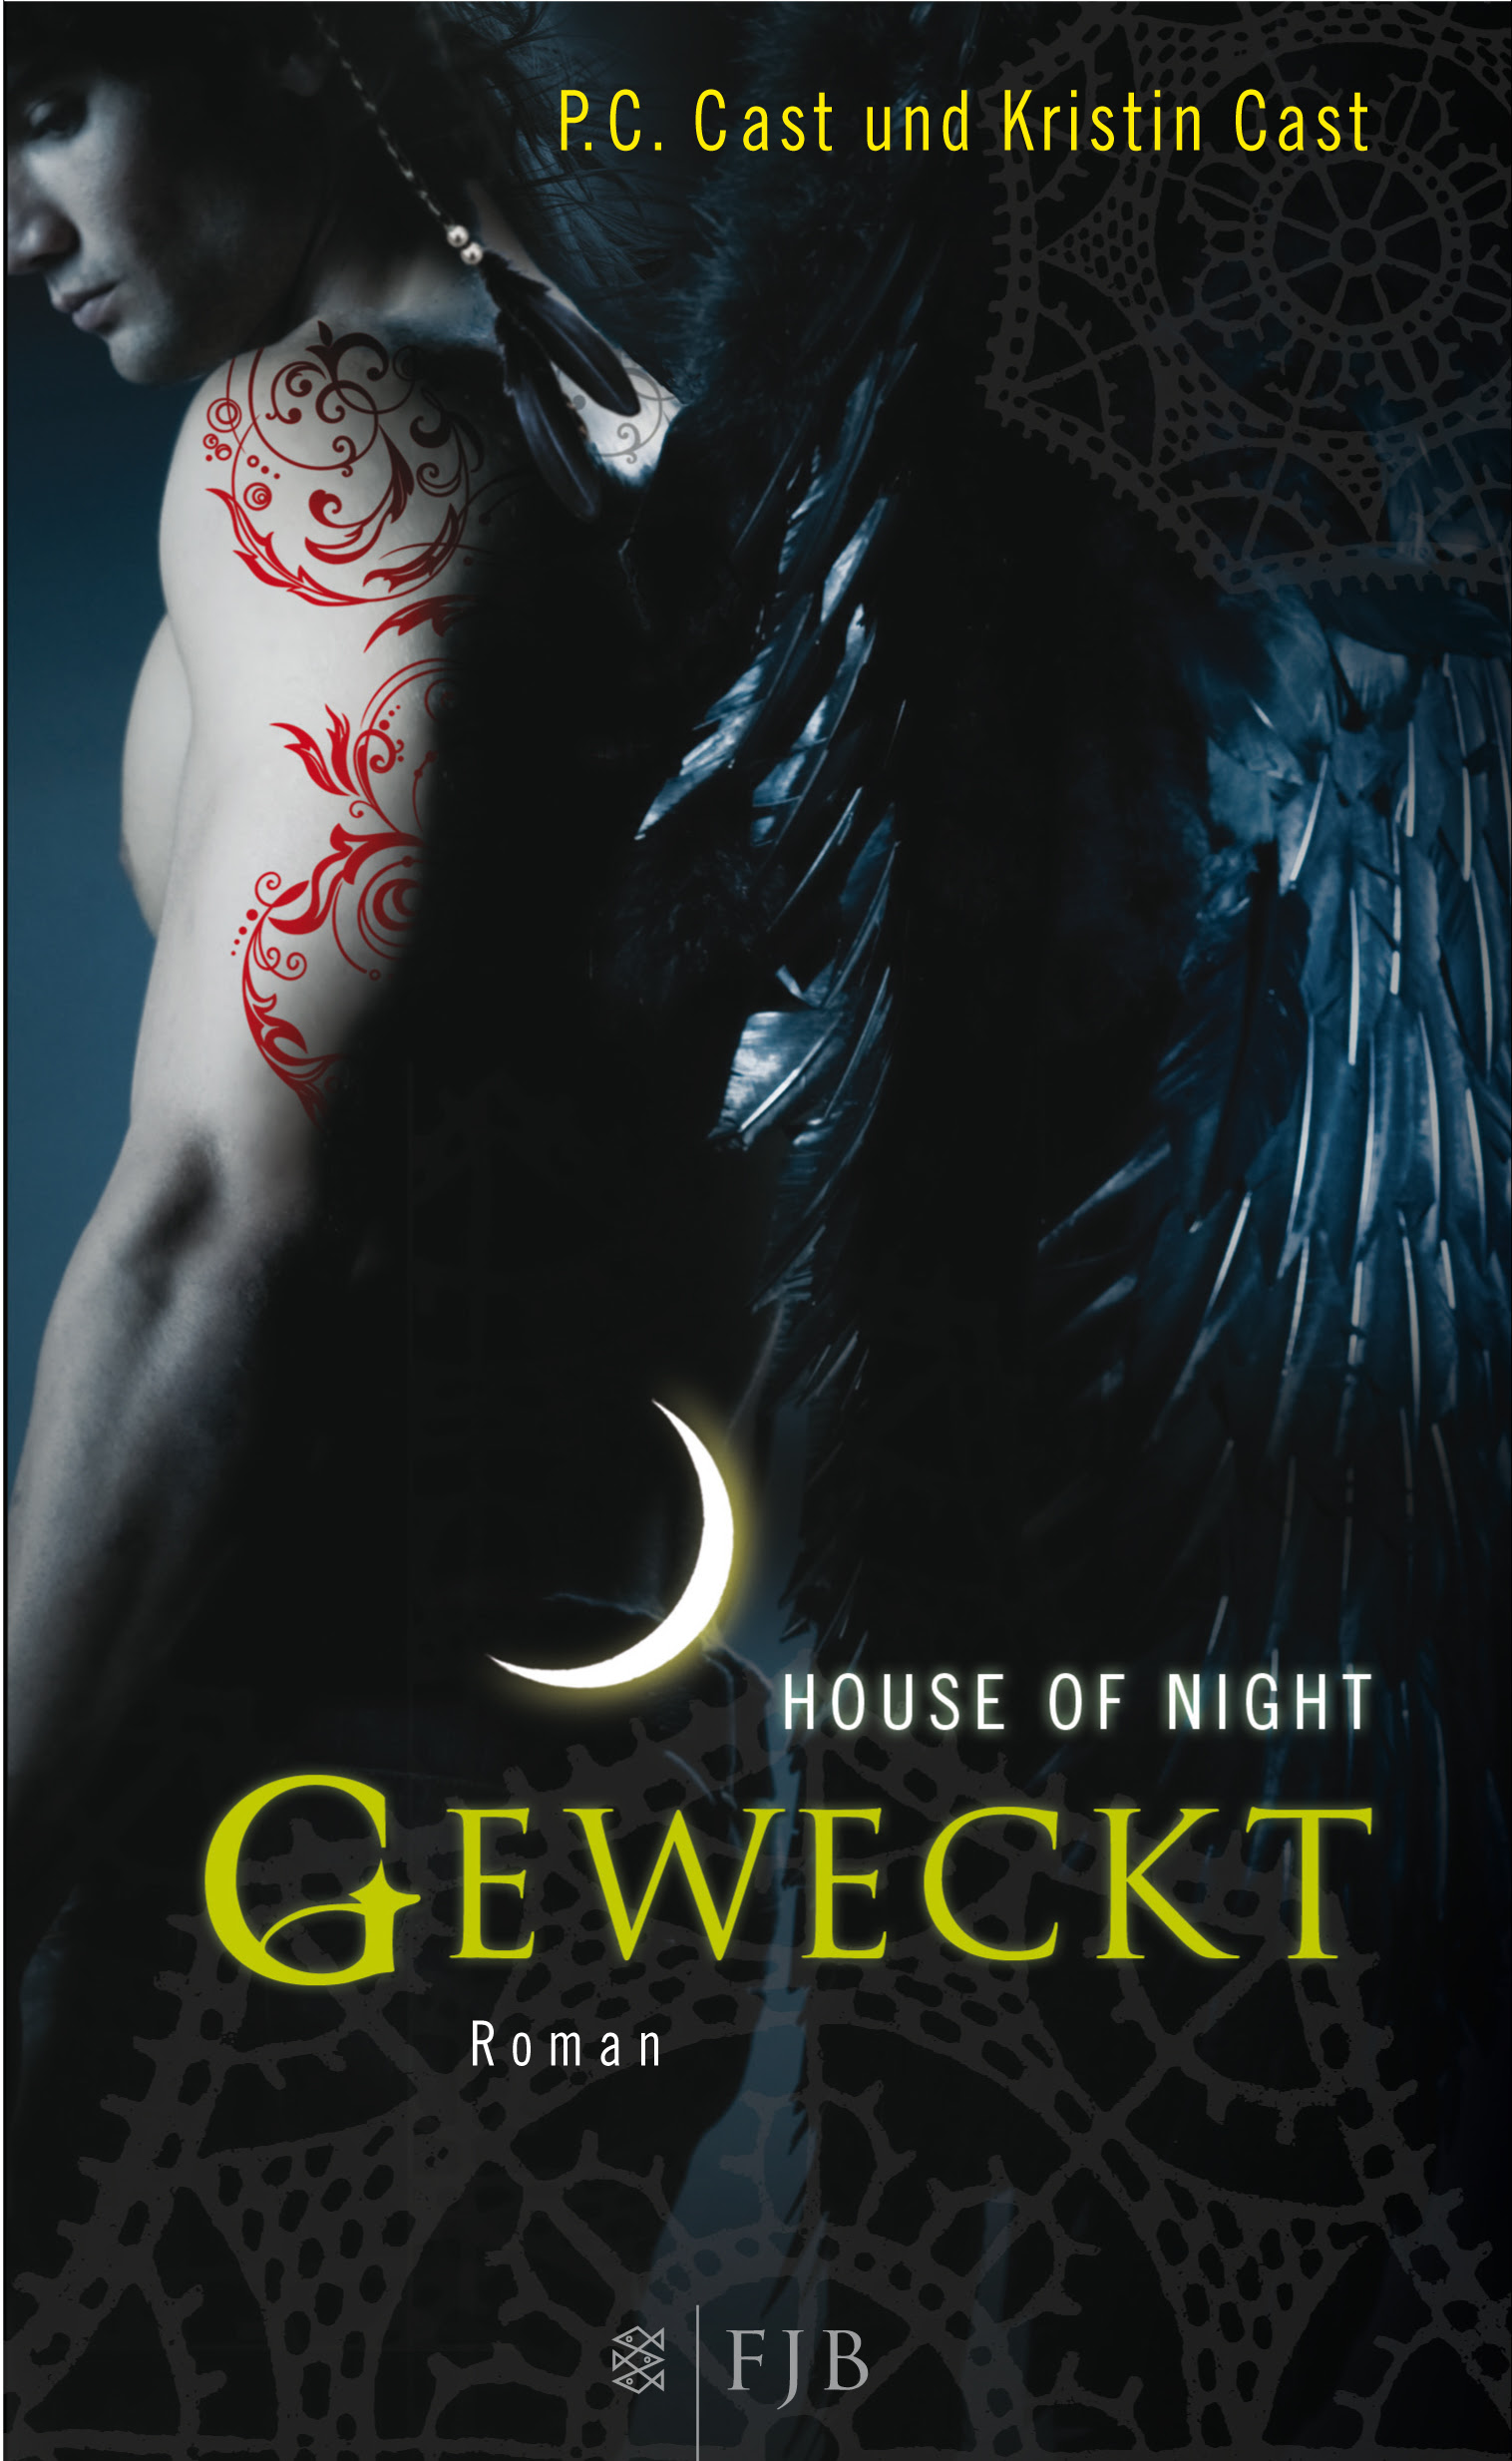 http://vignette4.wikia.nocookie.net/houseofnight/images/9/91/U1_978-3-8414-2008-4.jpg/revision/latest?cb=20130804111415&path-prefix=de